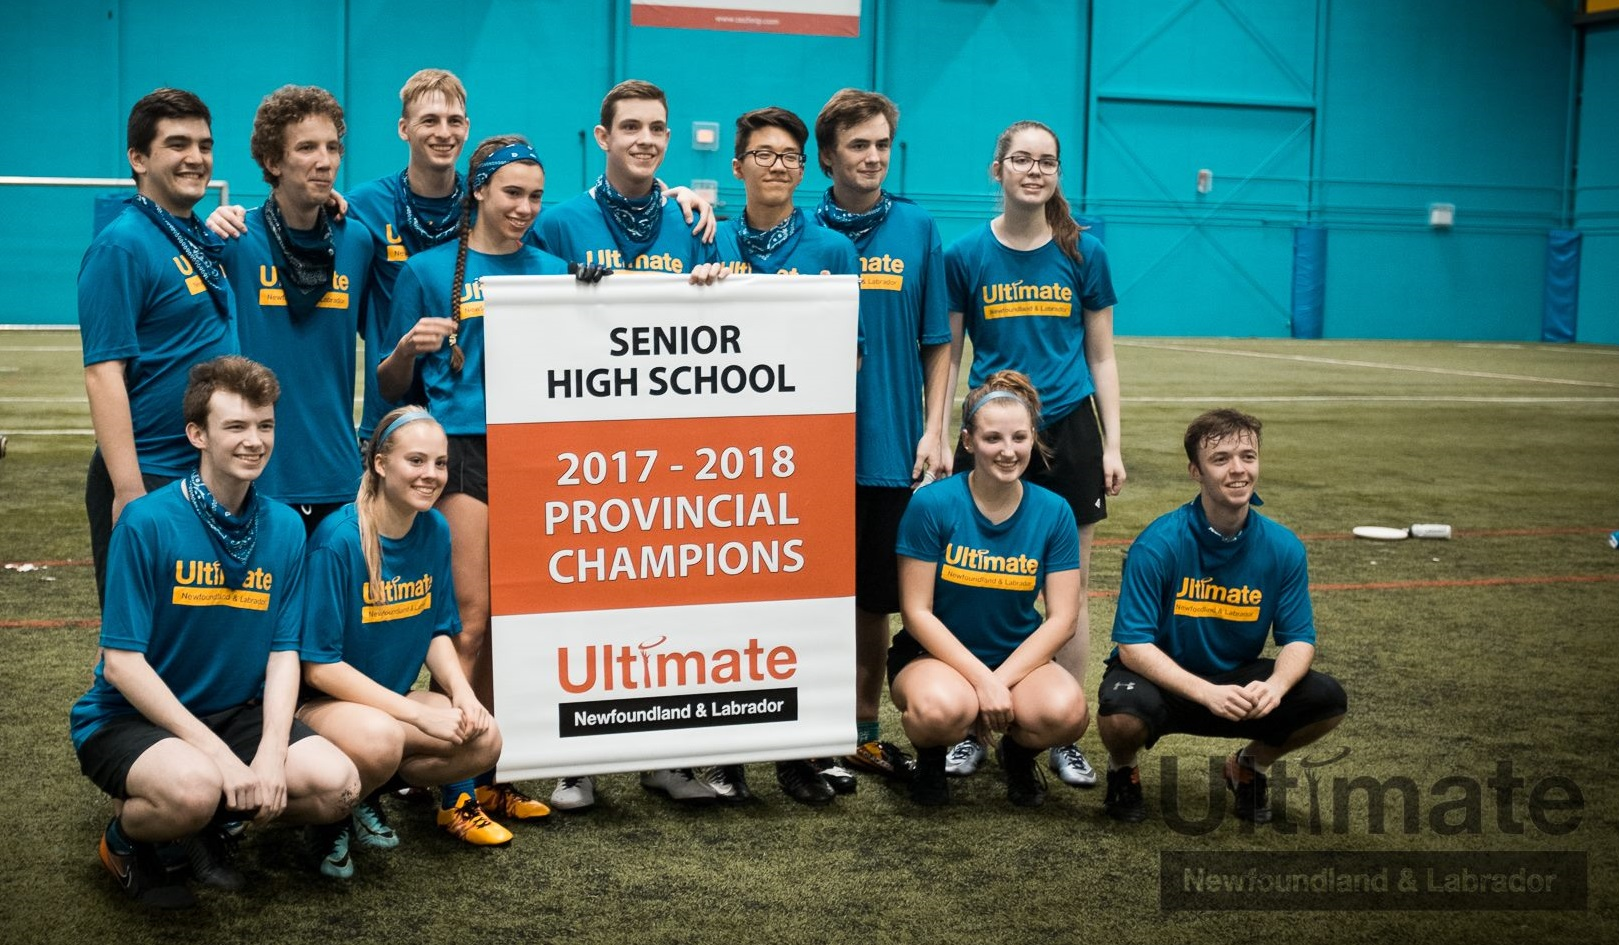 The team from Mount Pearl Senior High poses with the banner for the 2018 Senior High Provincial Tournament.